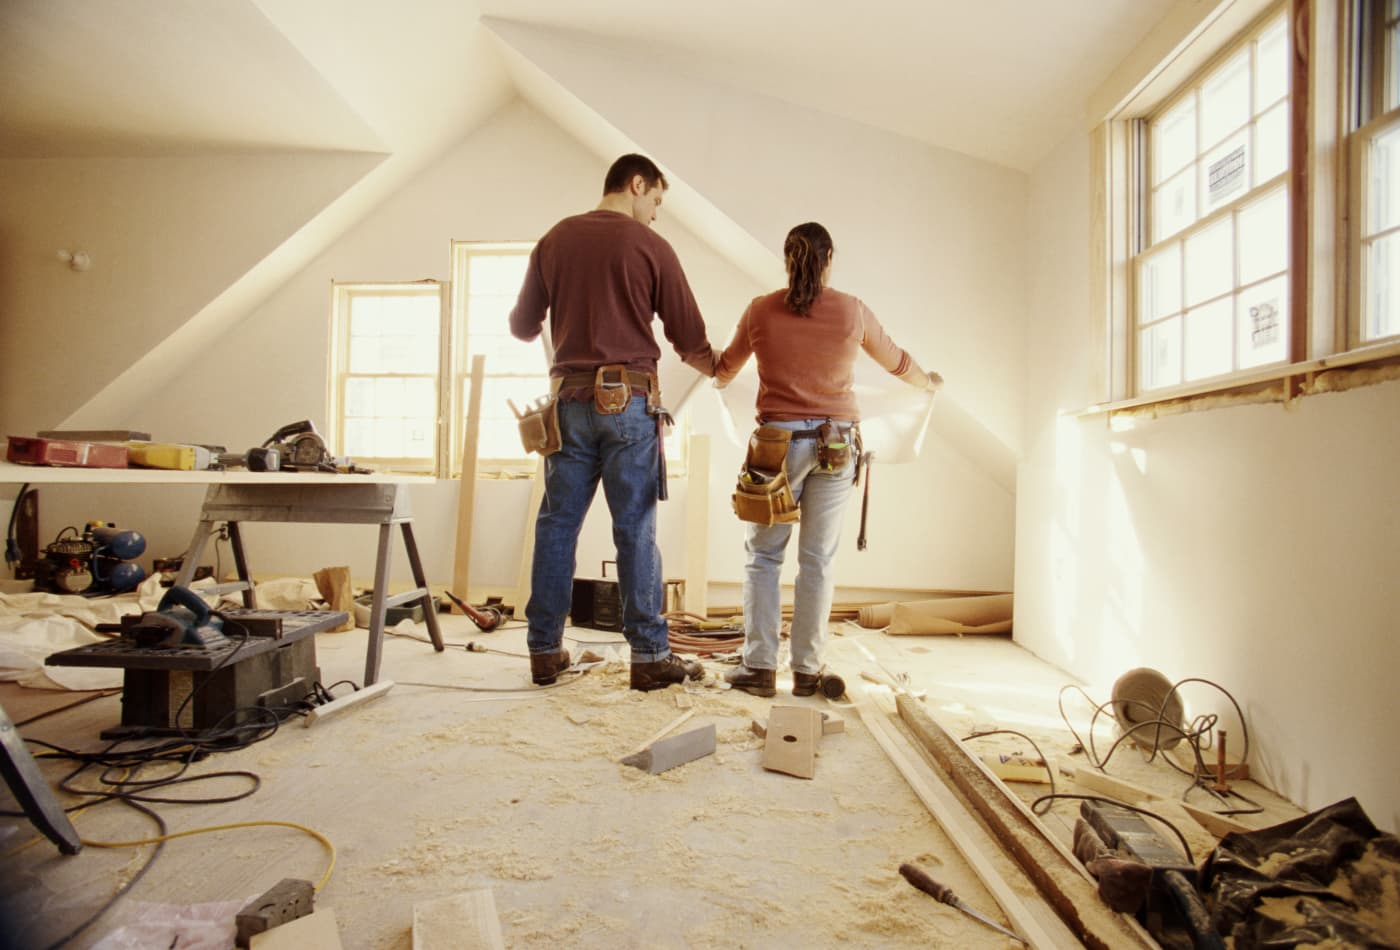 Home remodeling sees a slowdown—Here's why